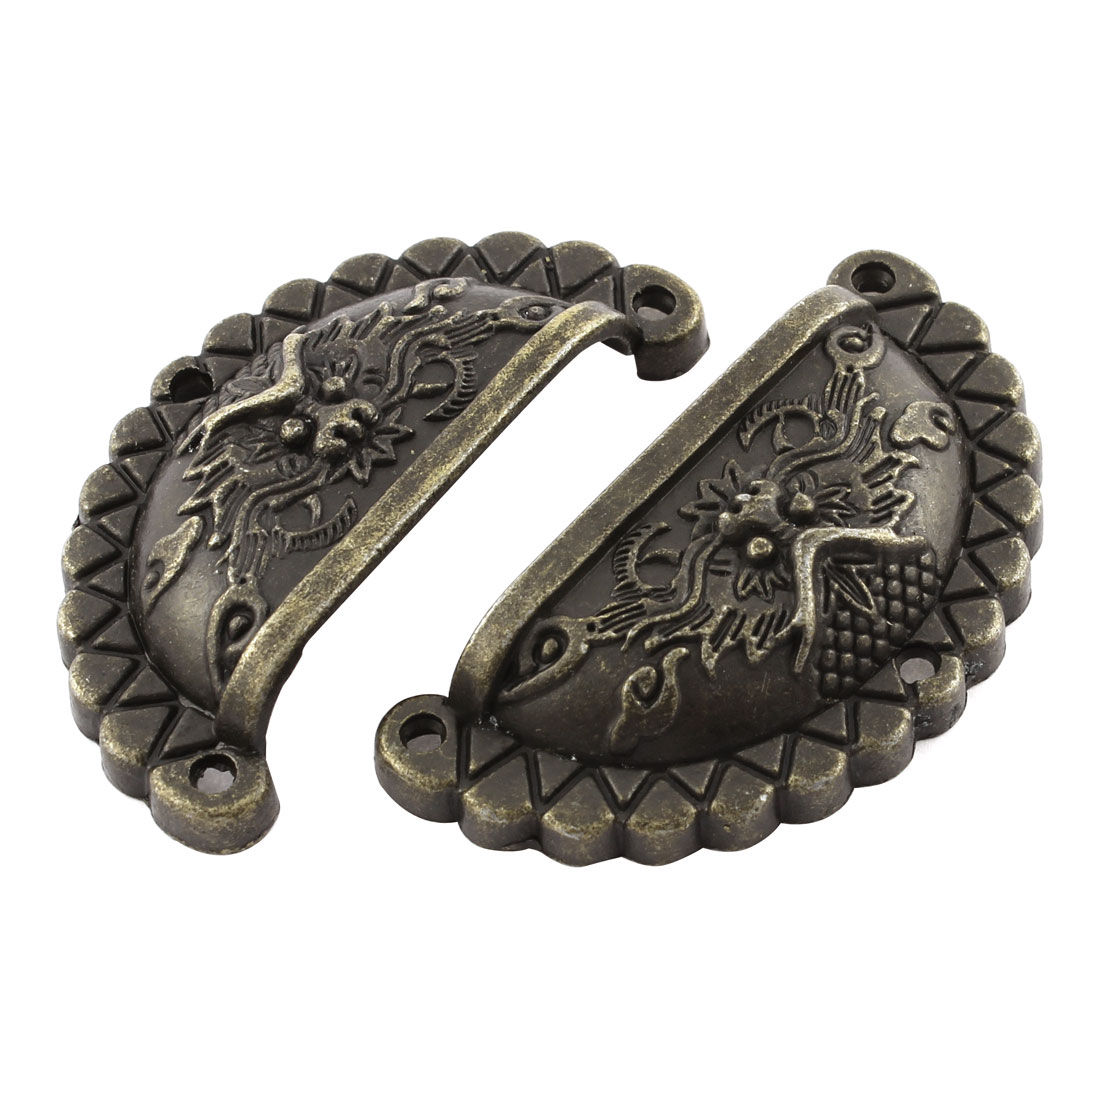 Cupboard Cabinet Door Dragon Metal Pull Handles Bronze Tone 2Pcs